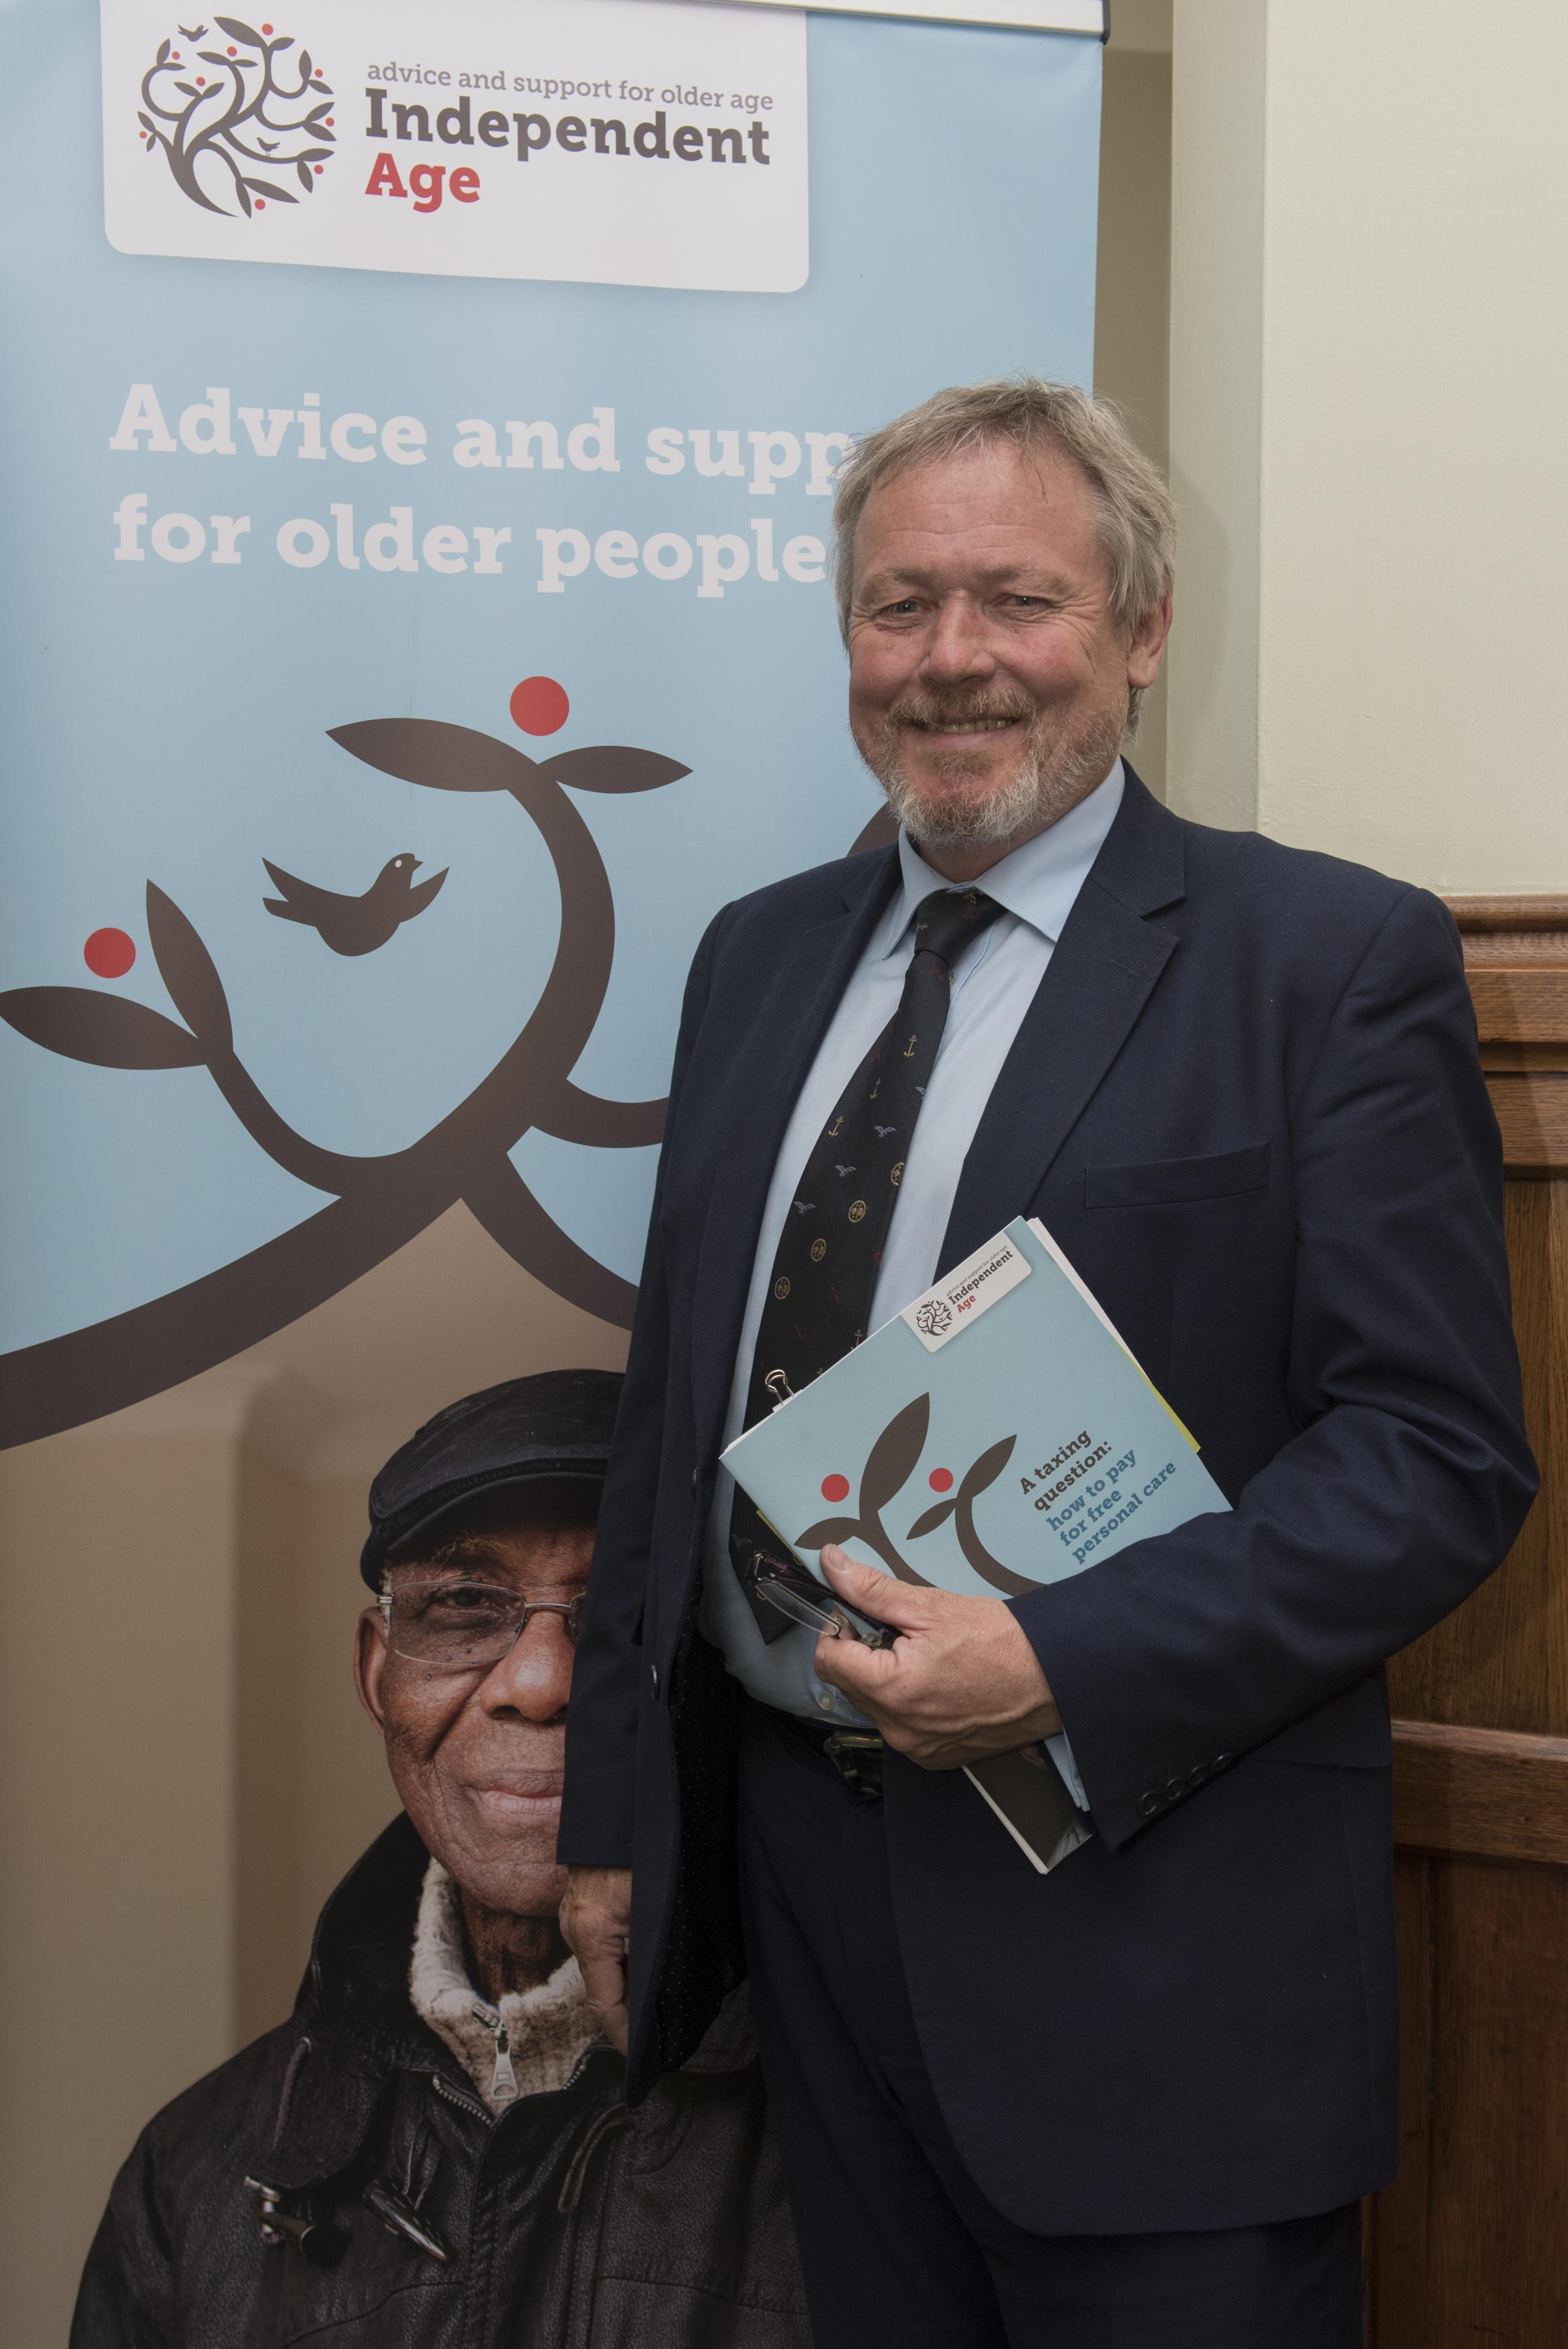 Funding crisis: Giles Watling has backed calls by Independent Age for free social care for the elderly. Picture: Danny Fitzpatrick